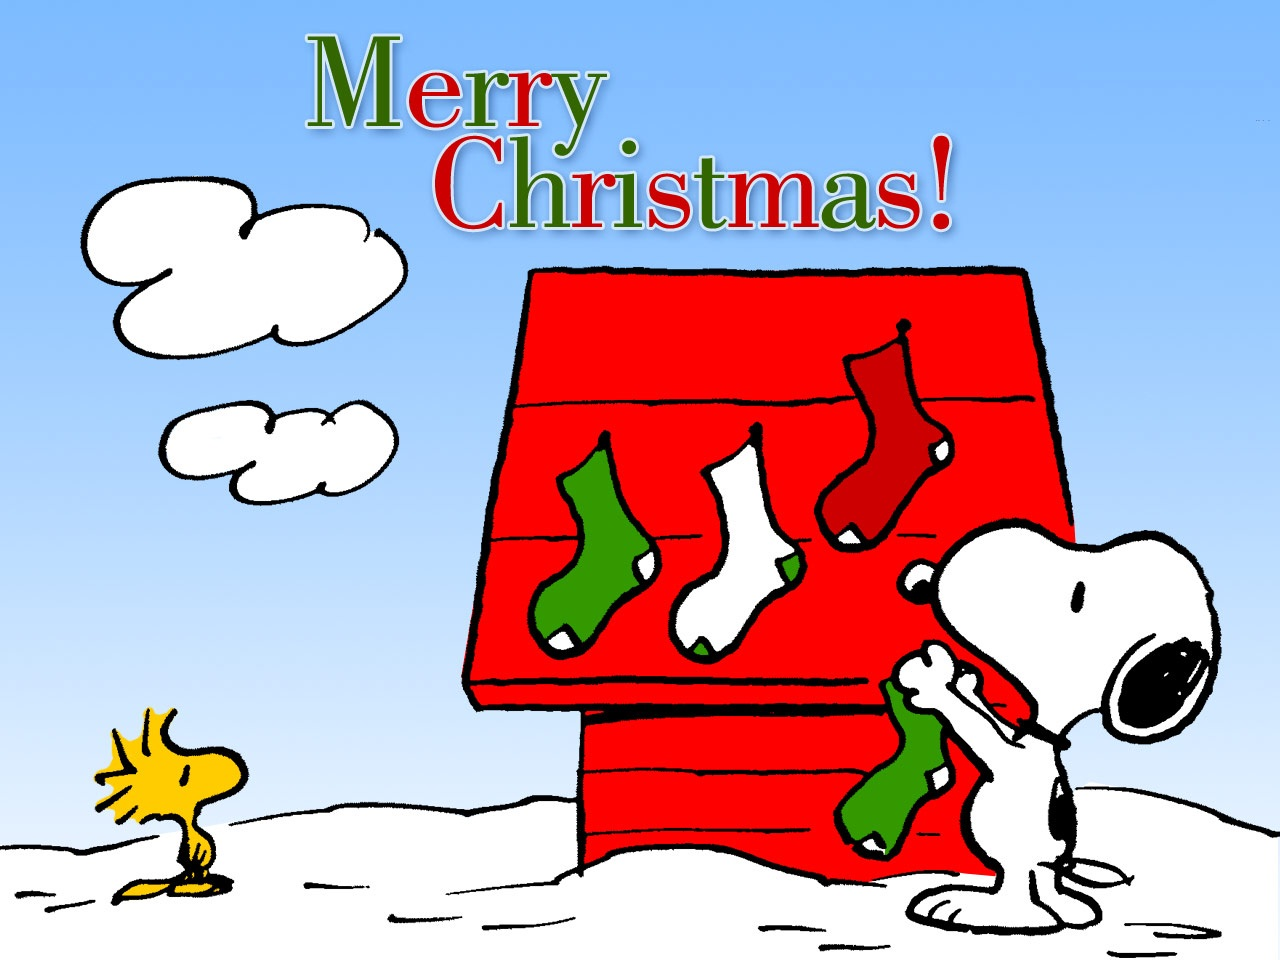 Snoopys Christmas Lyrics.50 Free Snoopy Christmas Computer Wallpaper On Wallpapersafari